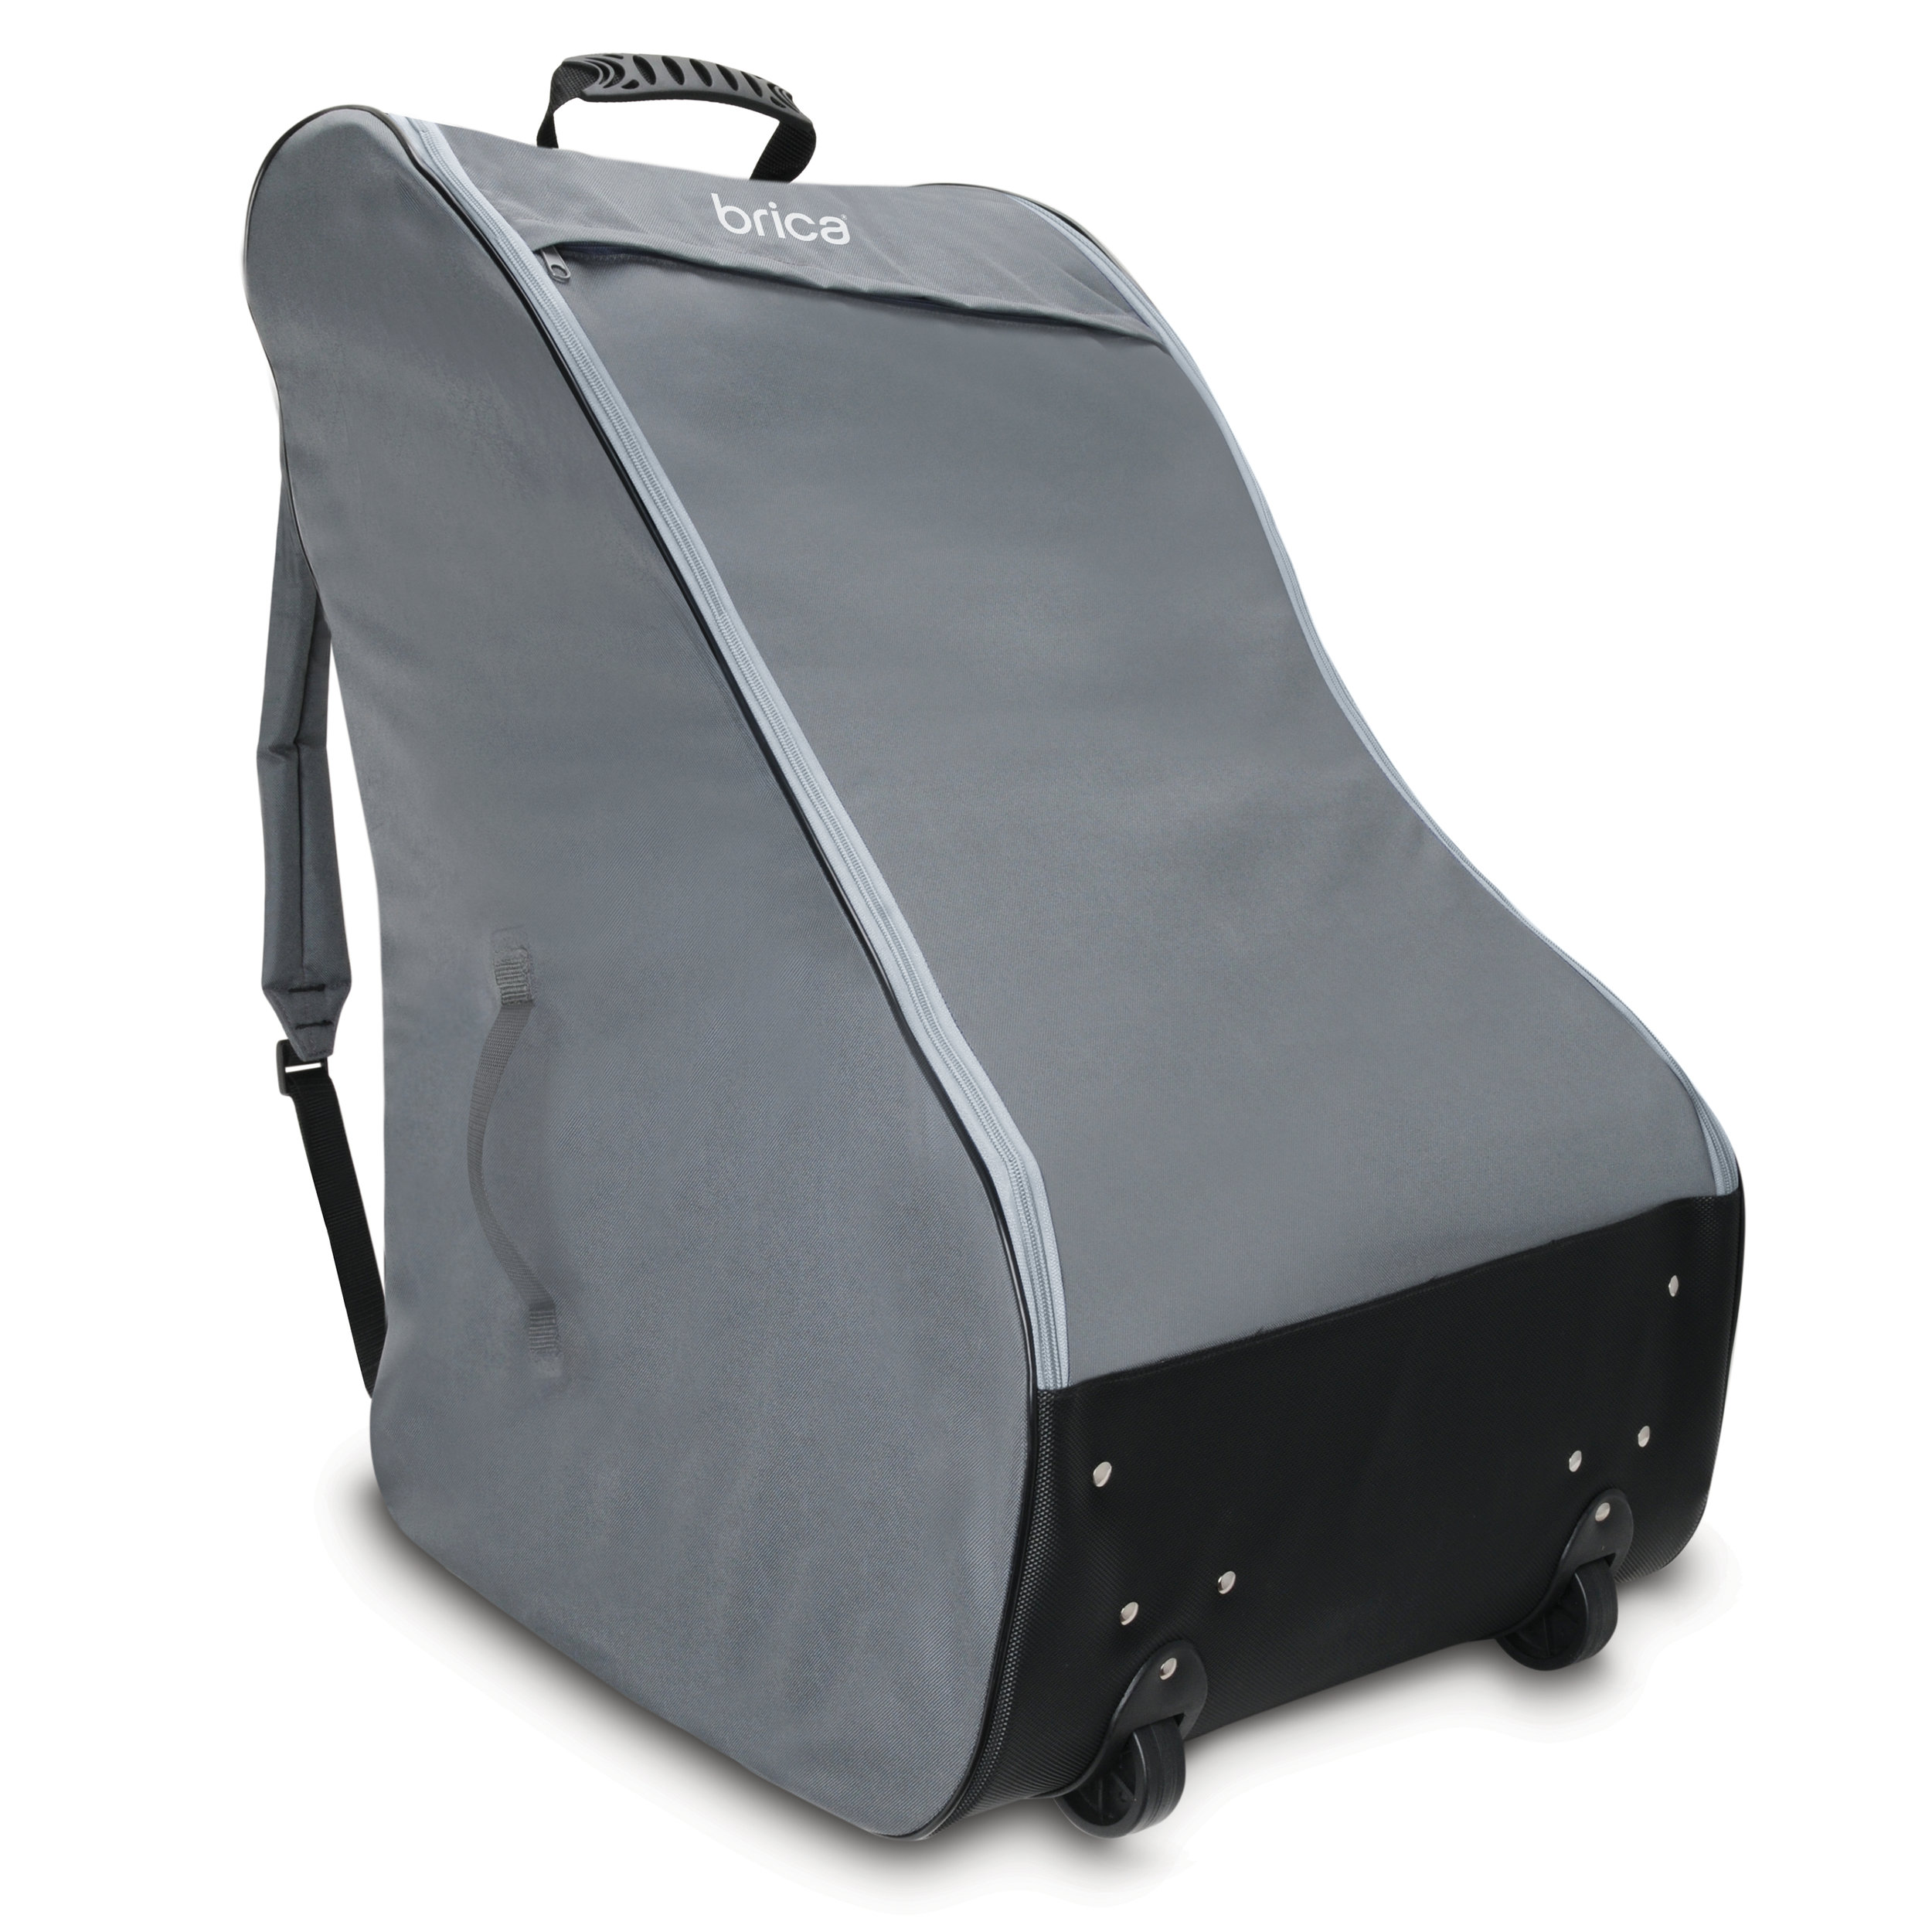 carseatcover1.jpg